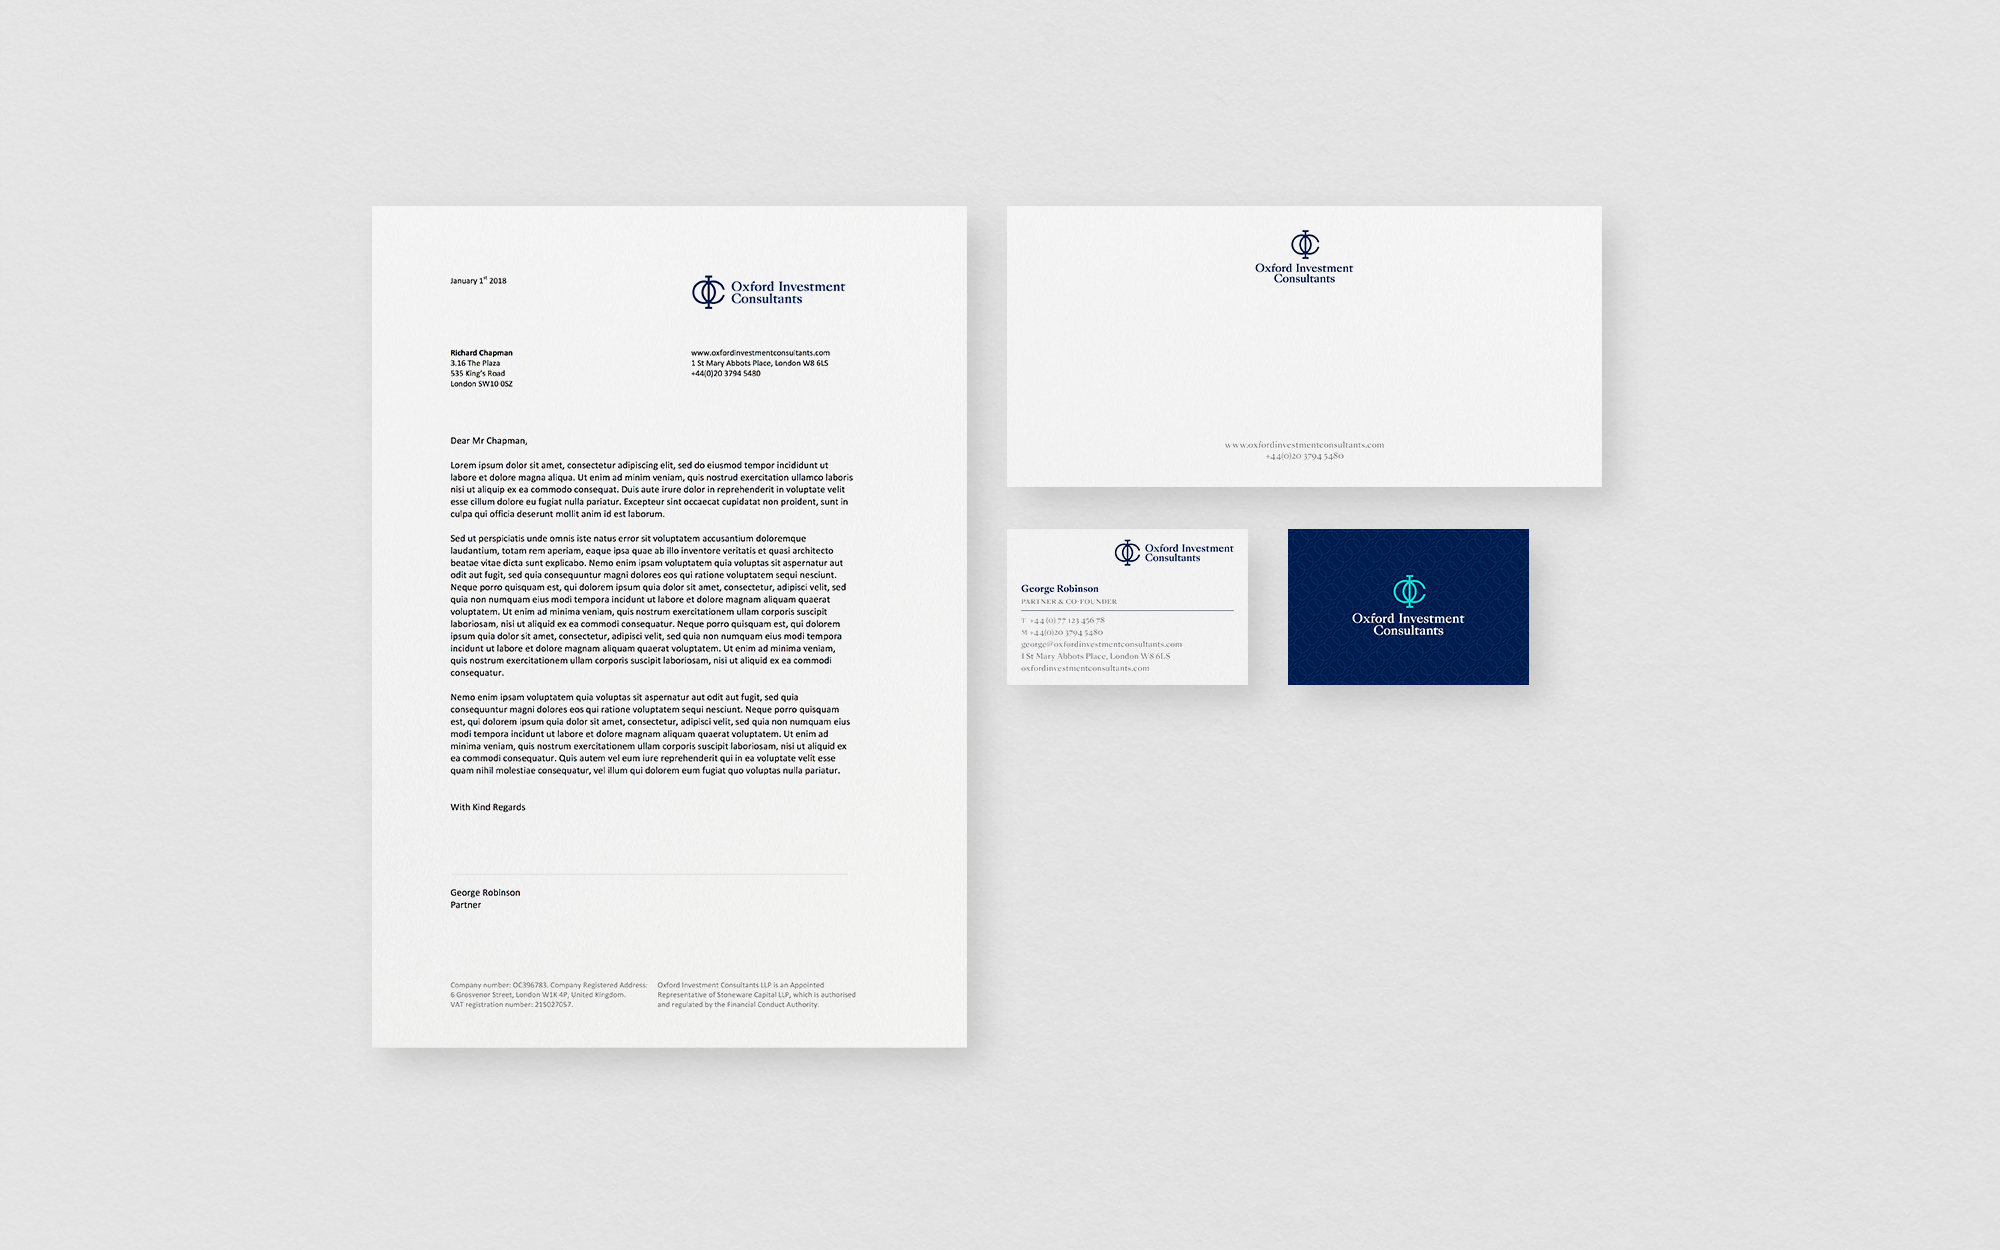 Oxford Investment Consultants Stationary Design